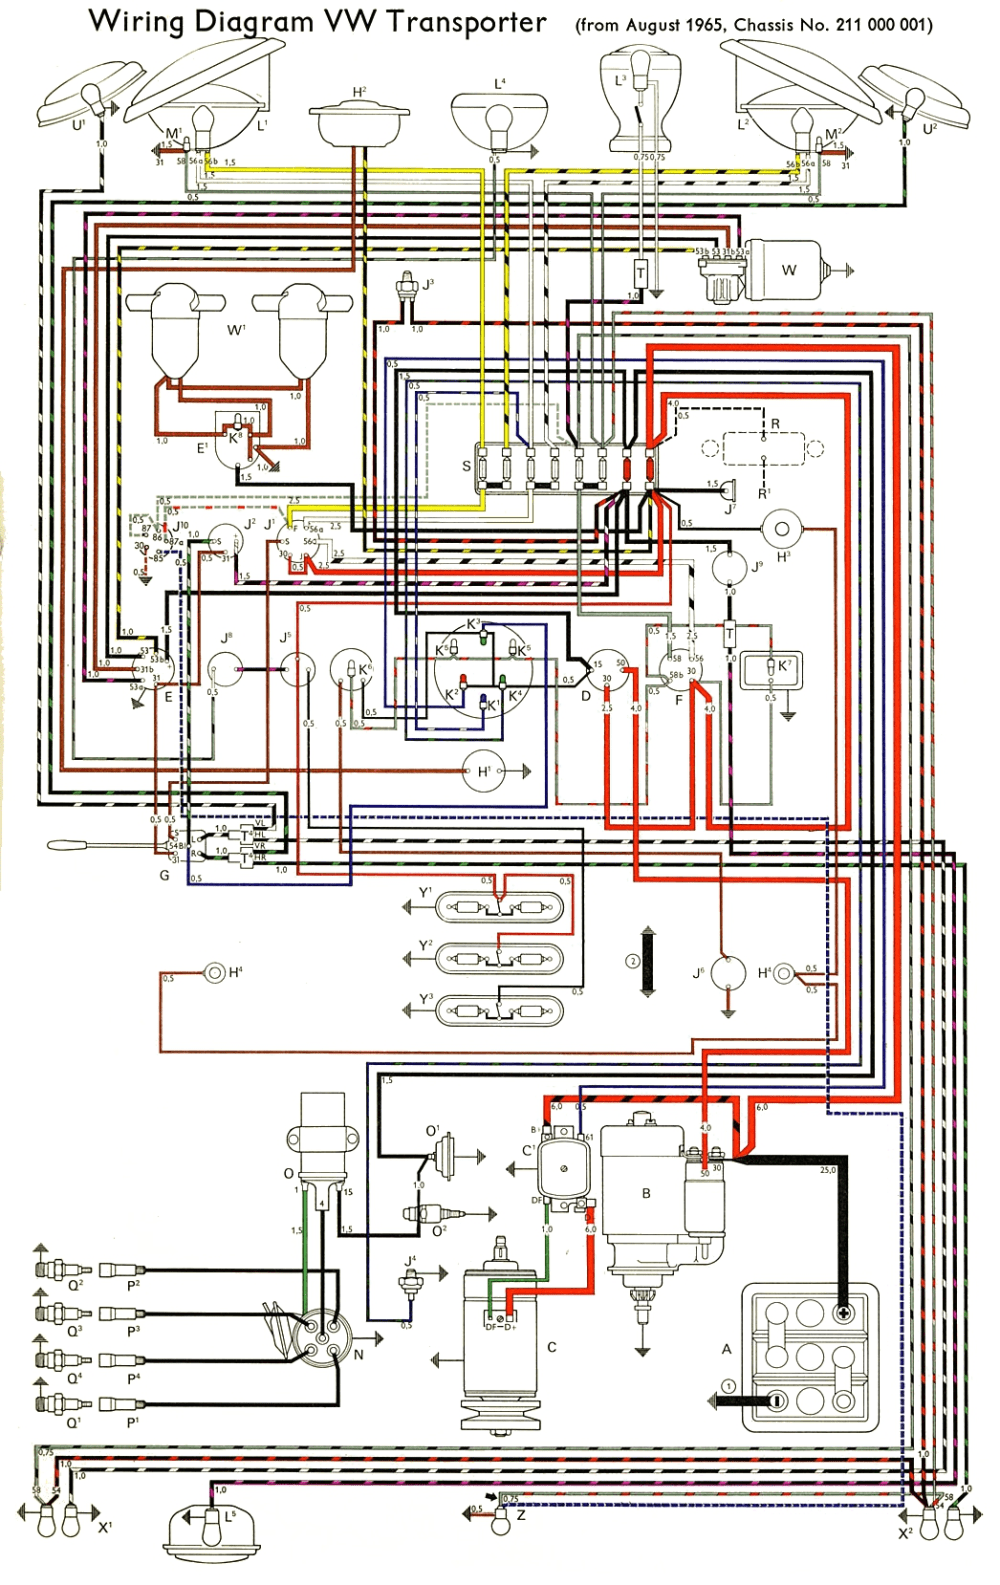 medium resolution of taskmaster f1f5105n wiring diagram electrical wiring diagram technic taskmaster f1f5105n wiring diagram